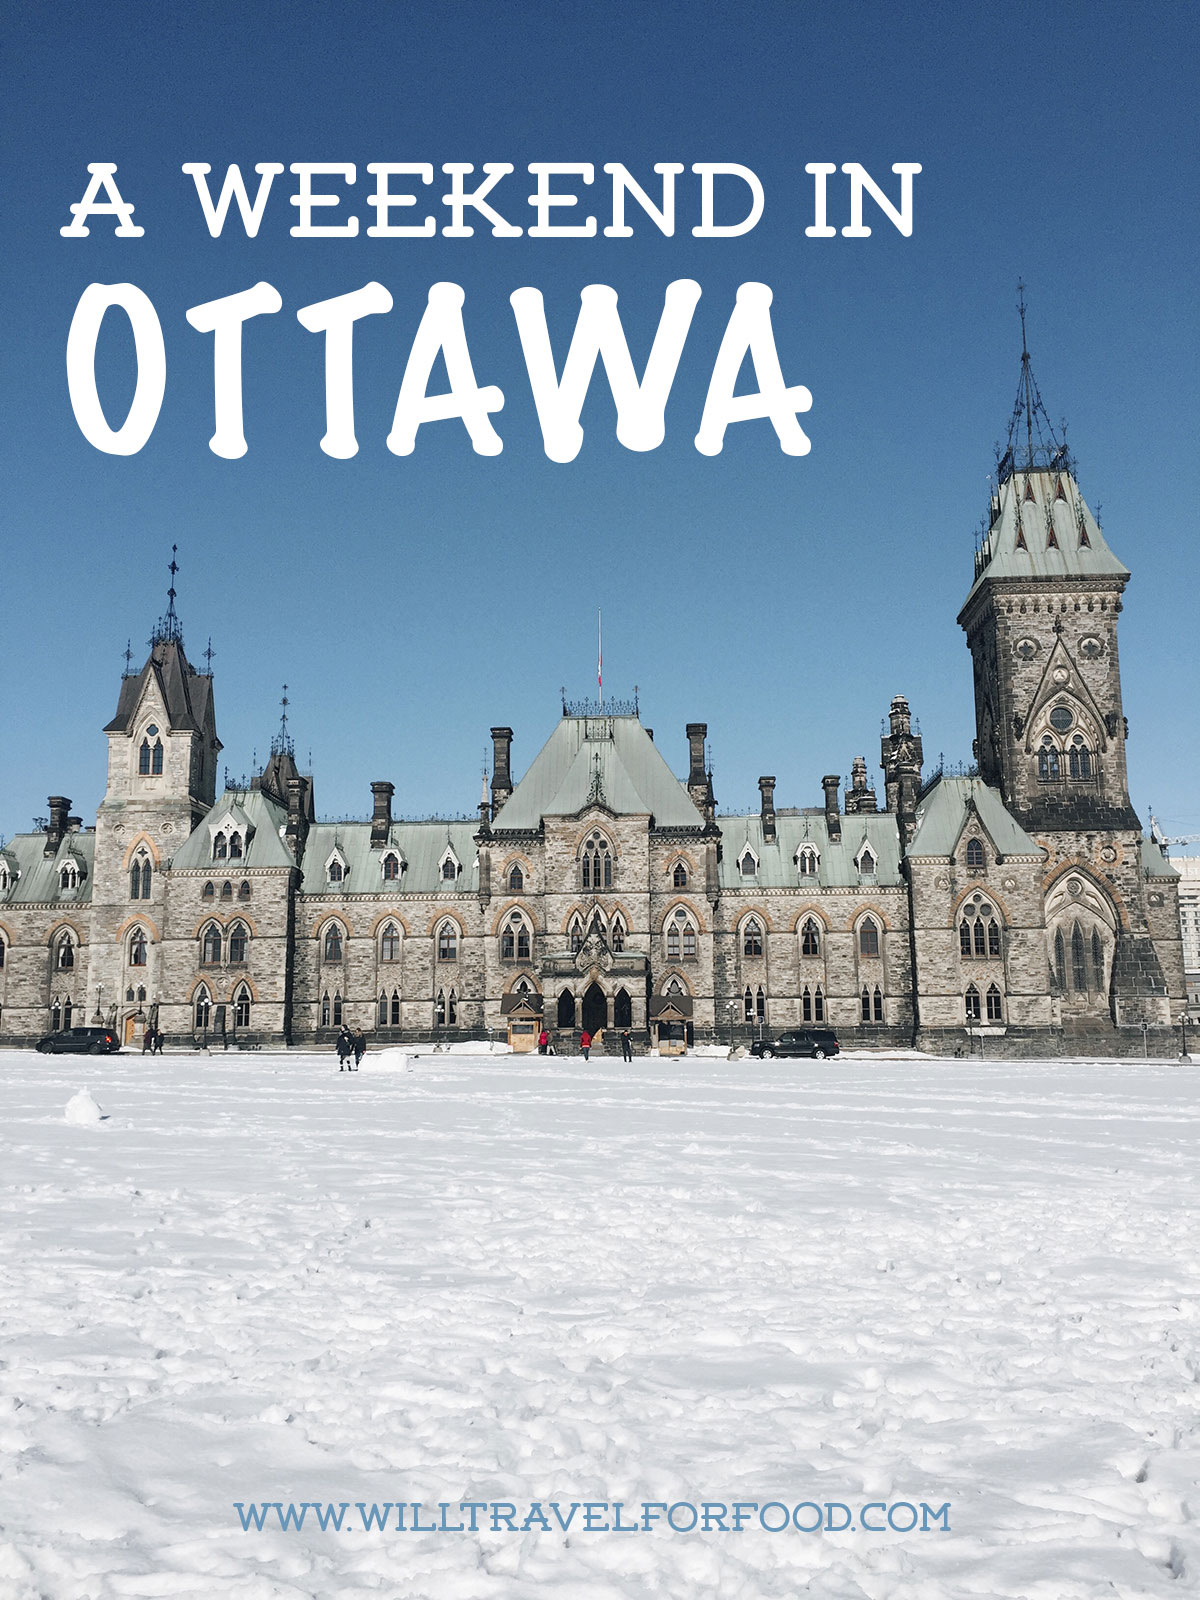 will-travel-for-food-weekend-in-ottawa © Will Travel for Food